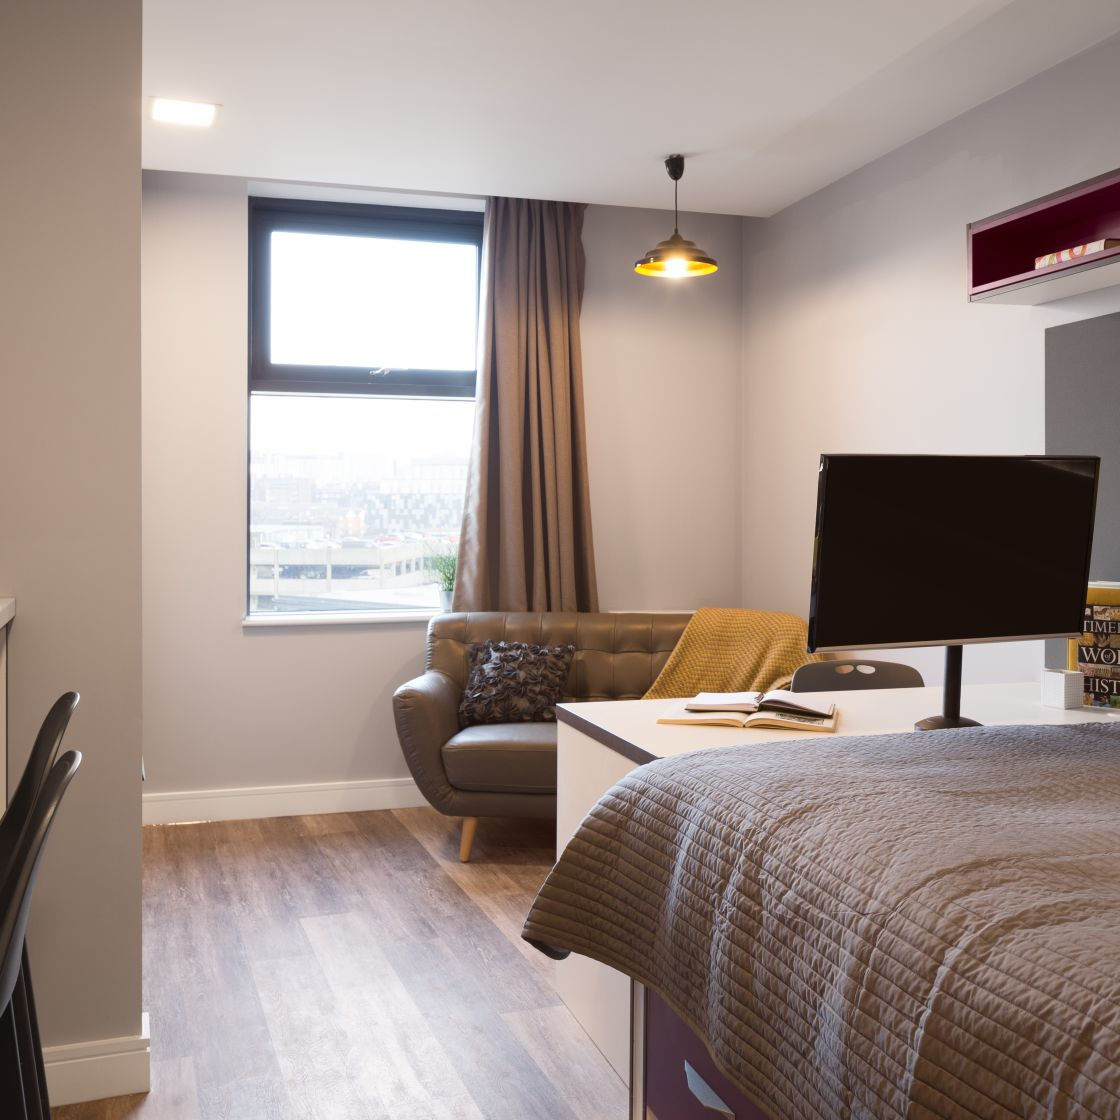 Elegance Student Apartment in Liverpool. Double Bed, desk and sofa. IconInc, The Ascent